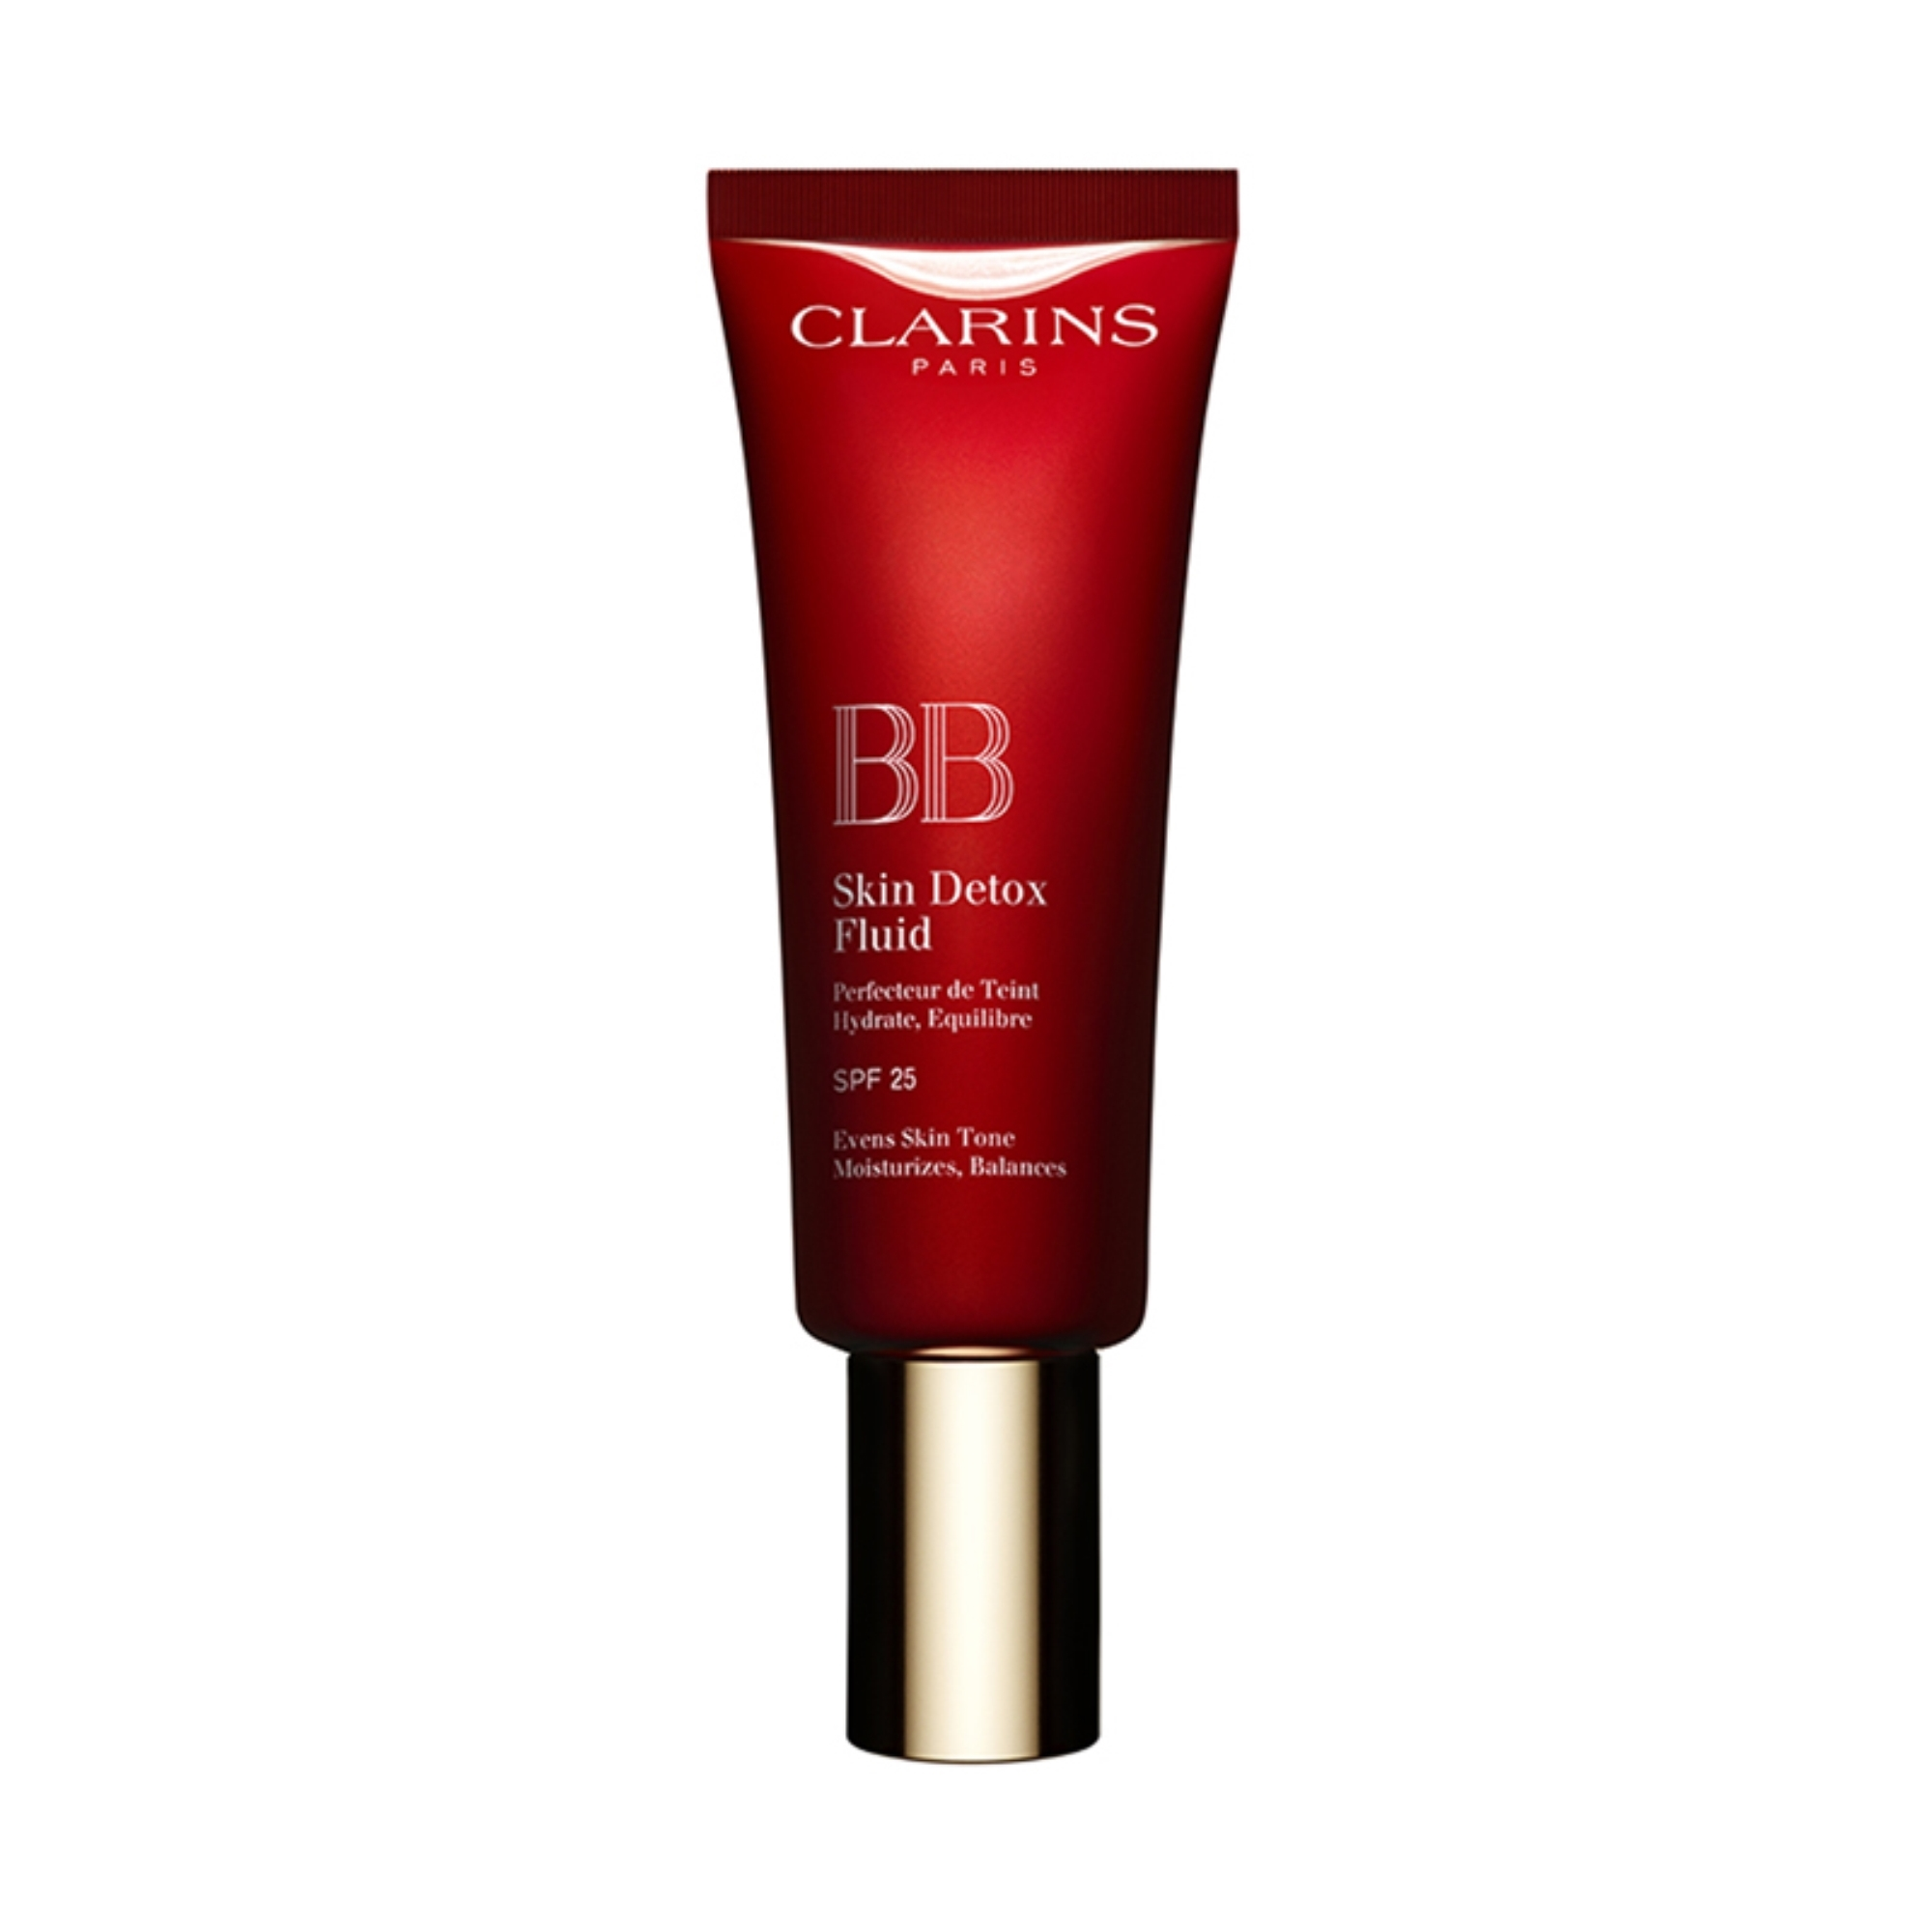 BB Skin Detox Fluid foundation 1 Light